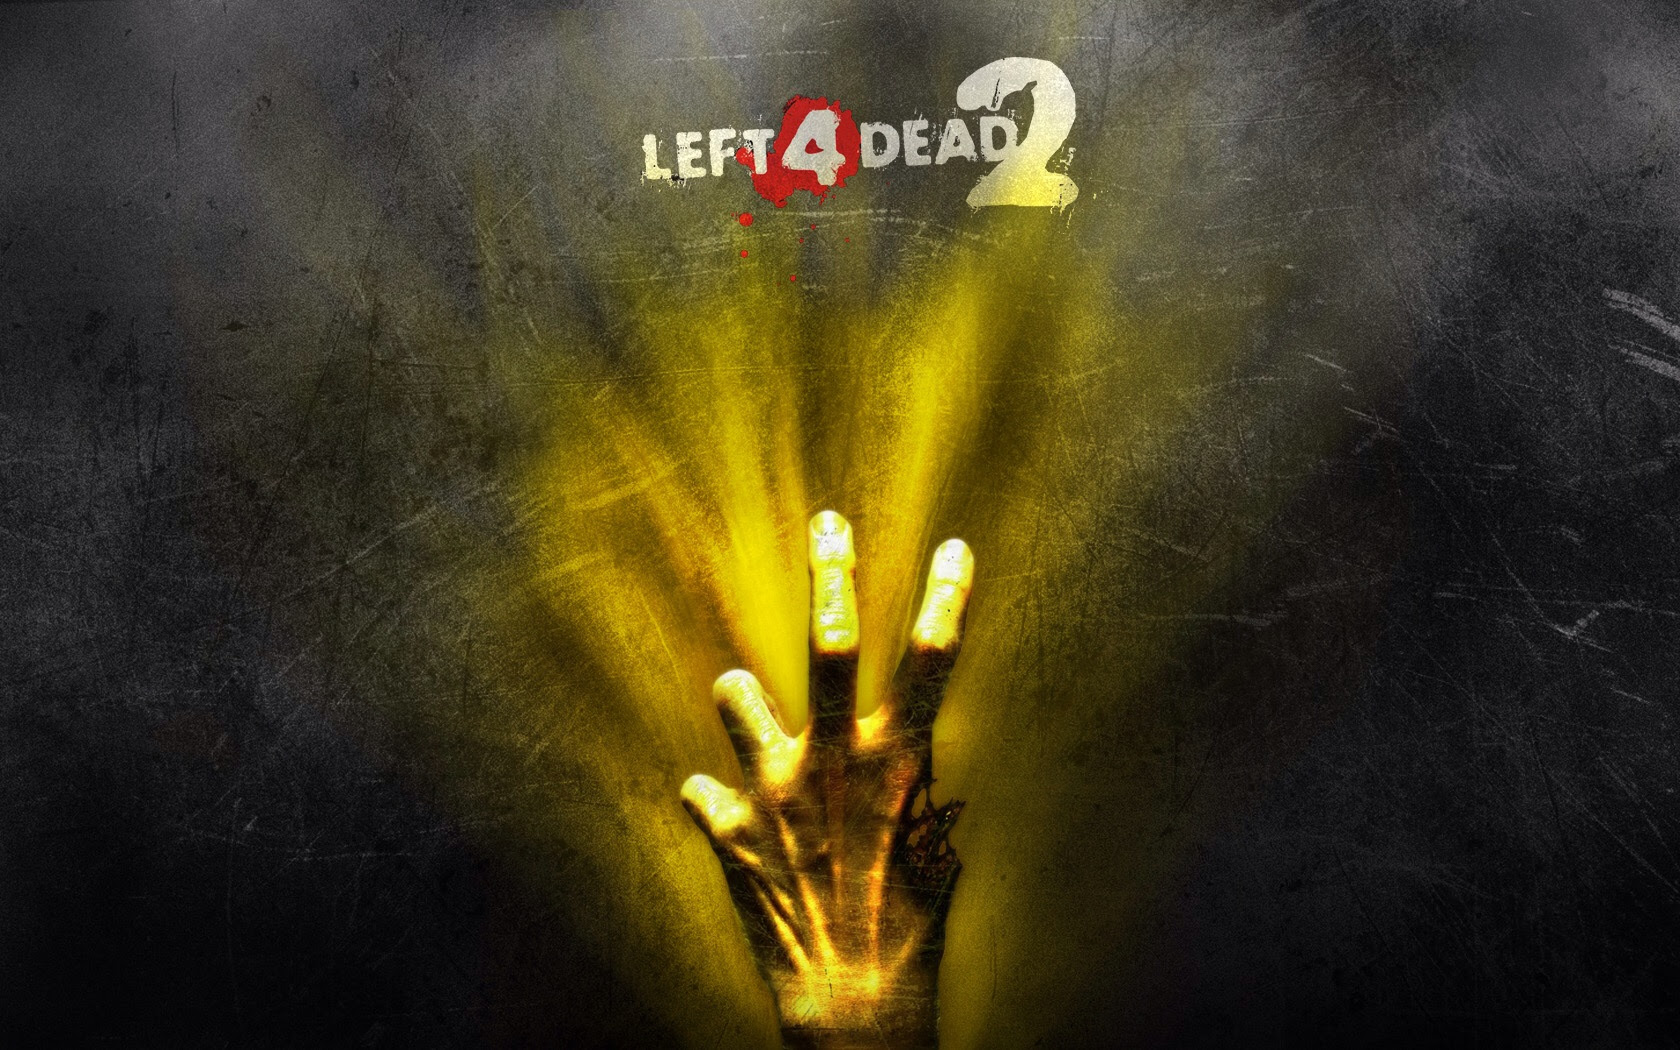 Left 4 Dead 2 Left 4 Dead 2 Wallpaper 38596839 Fanpop